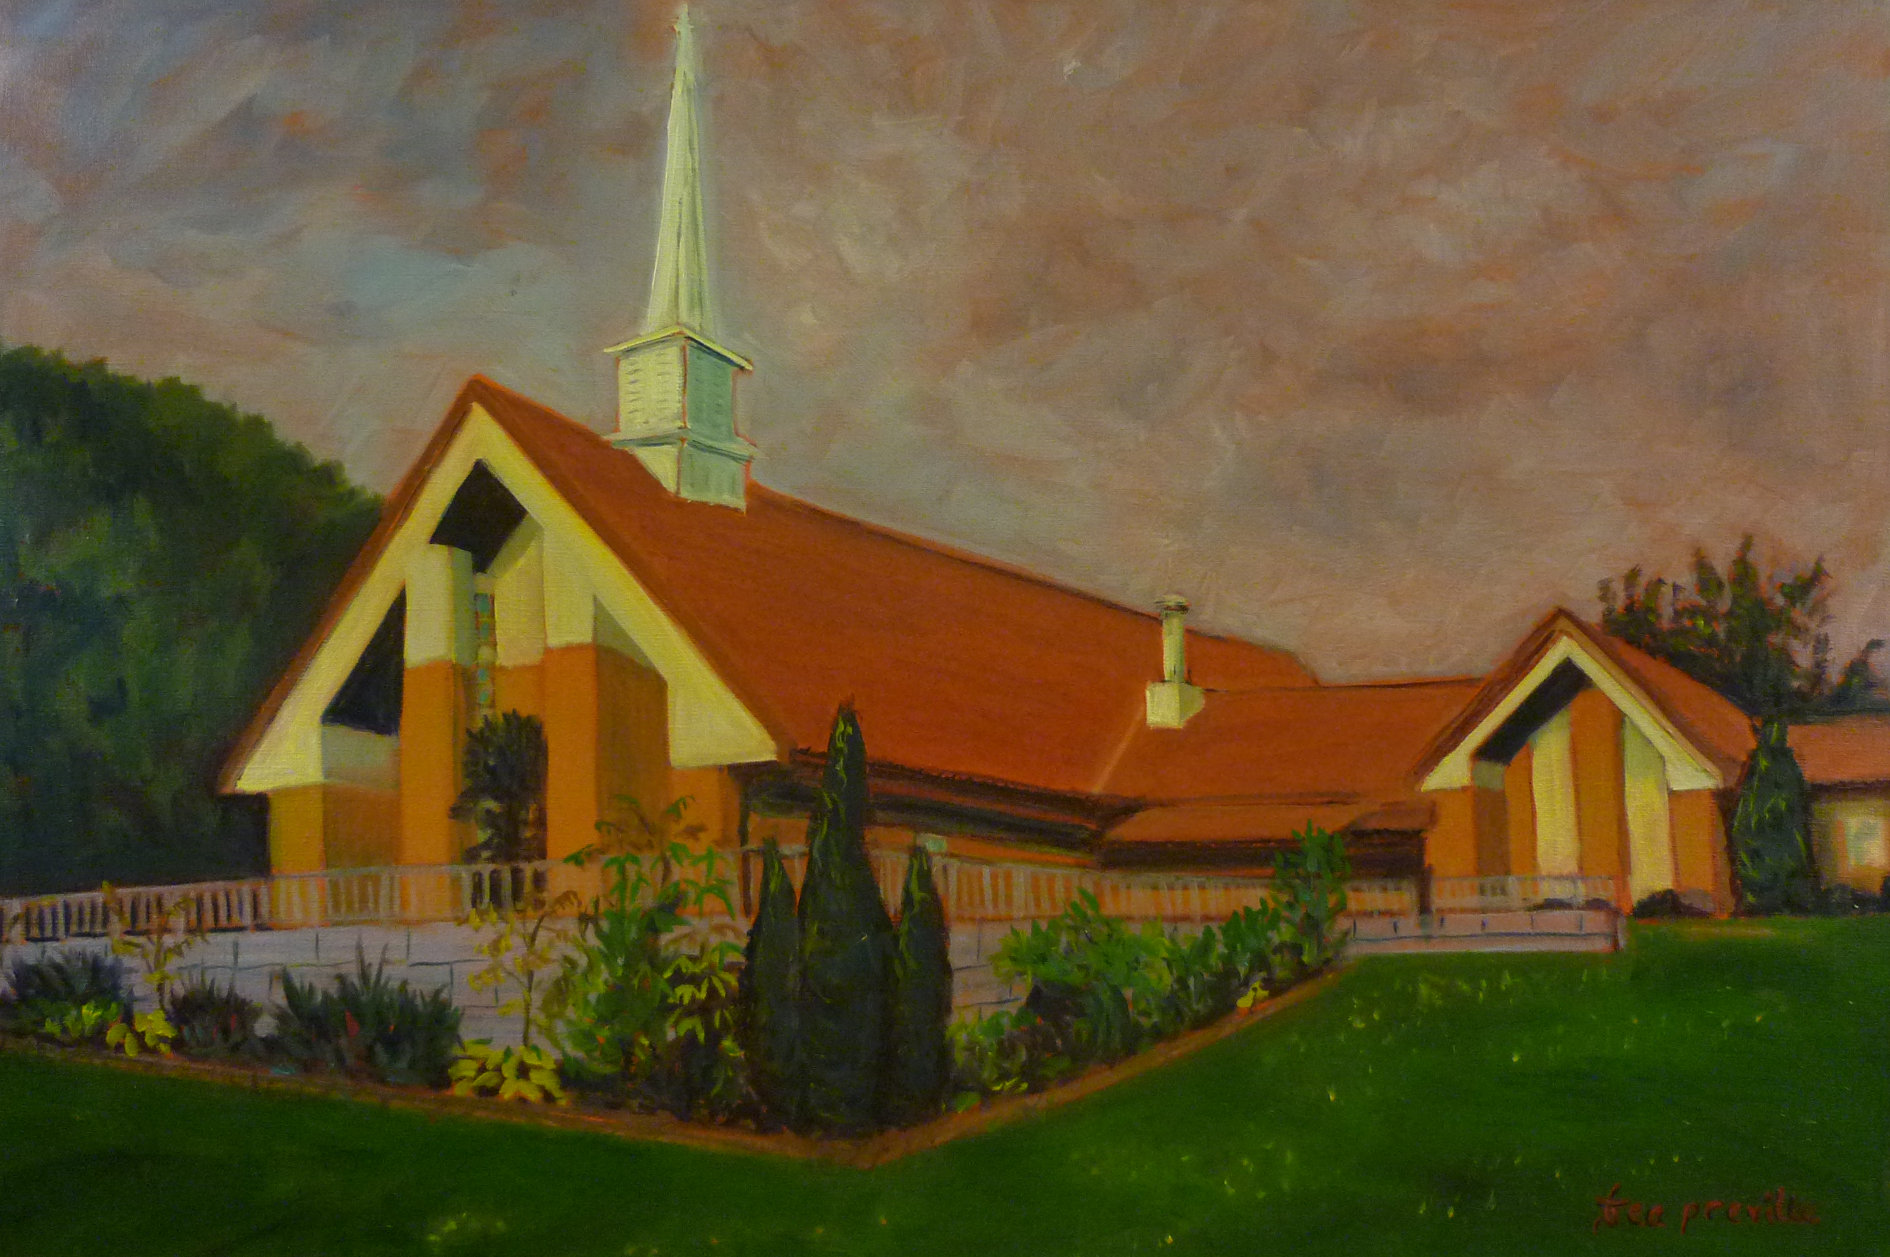 Church of Jesus Christ of Latter Day Saints Nelson, BC by Tea Preville